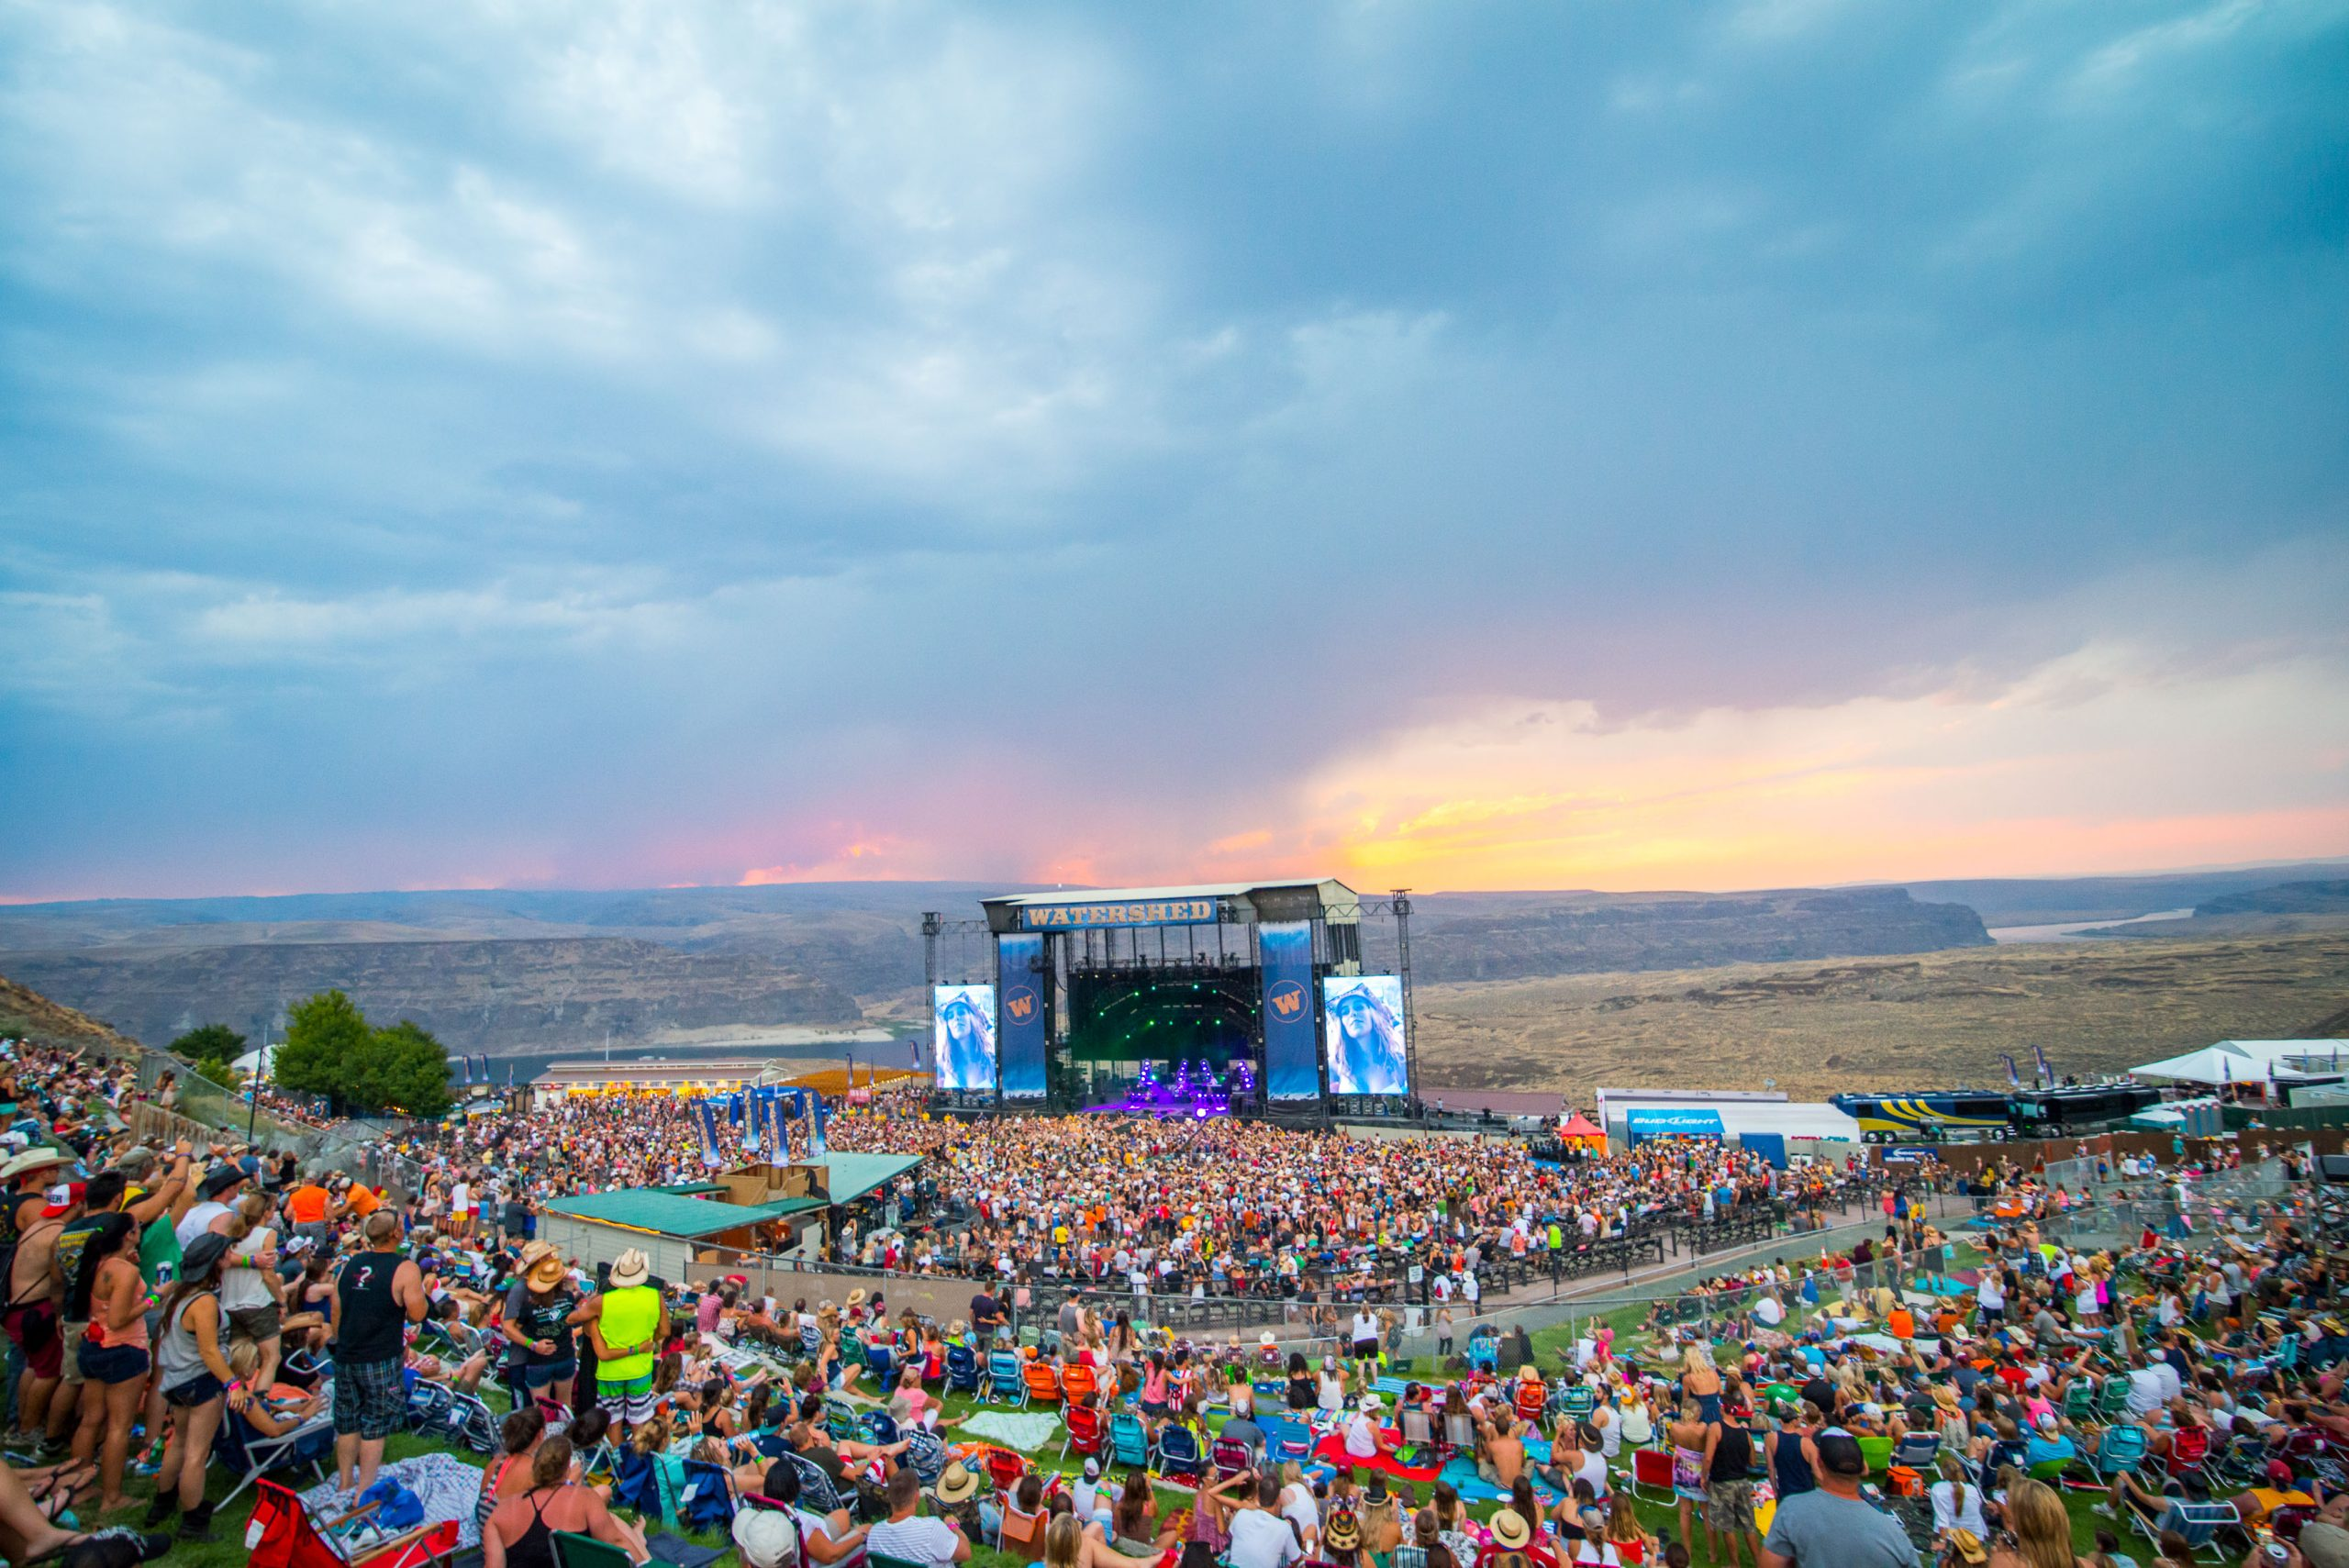 Watershed Festival Crowd